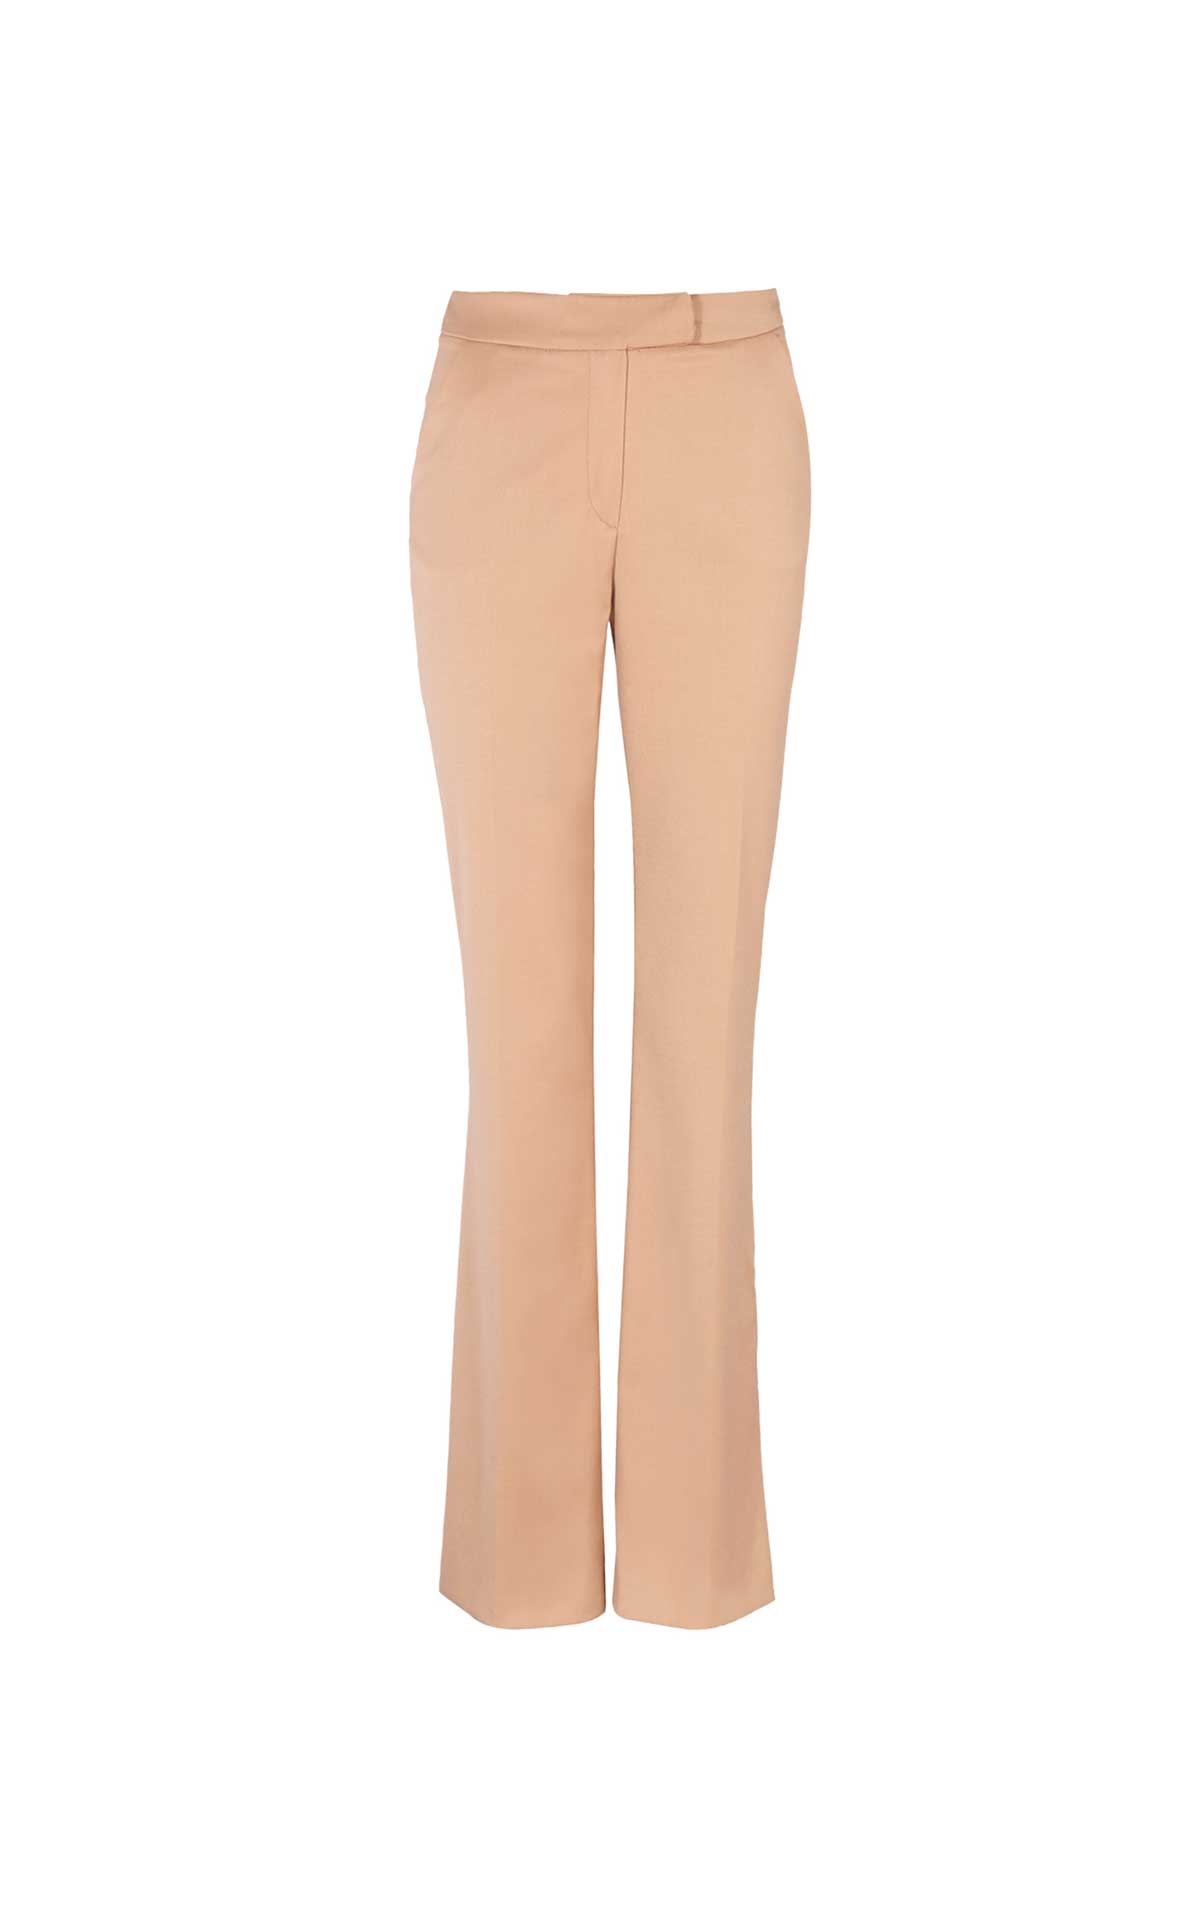 Nude trousers Dolores Promess